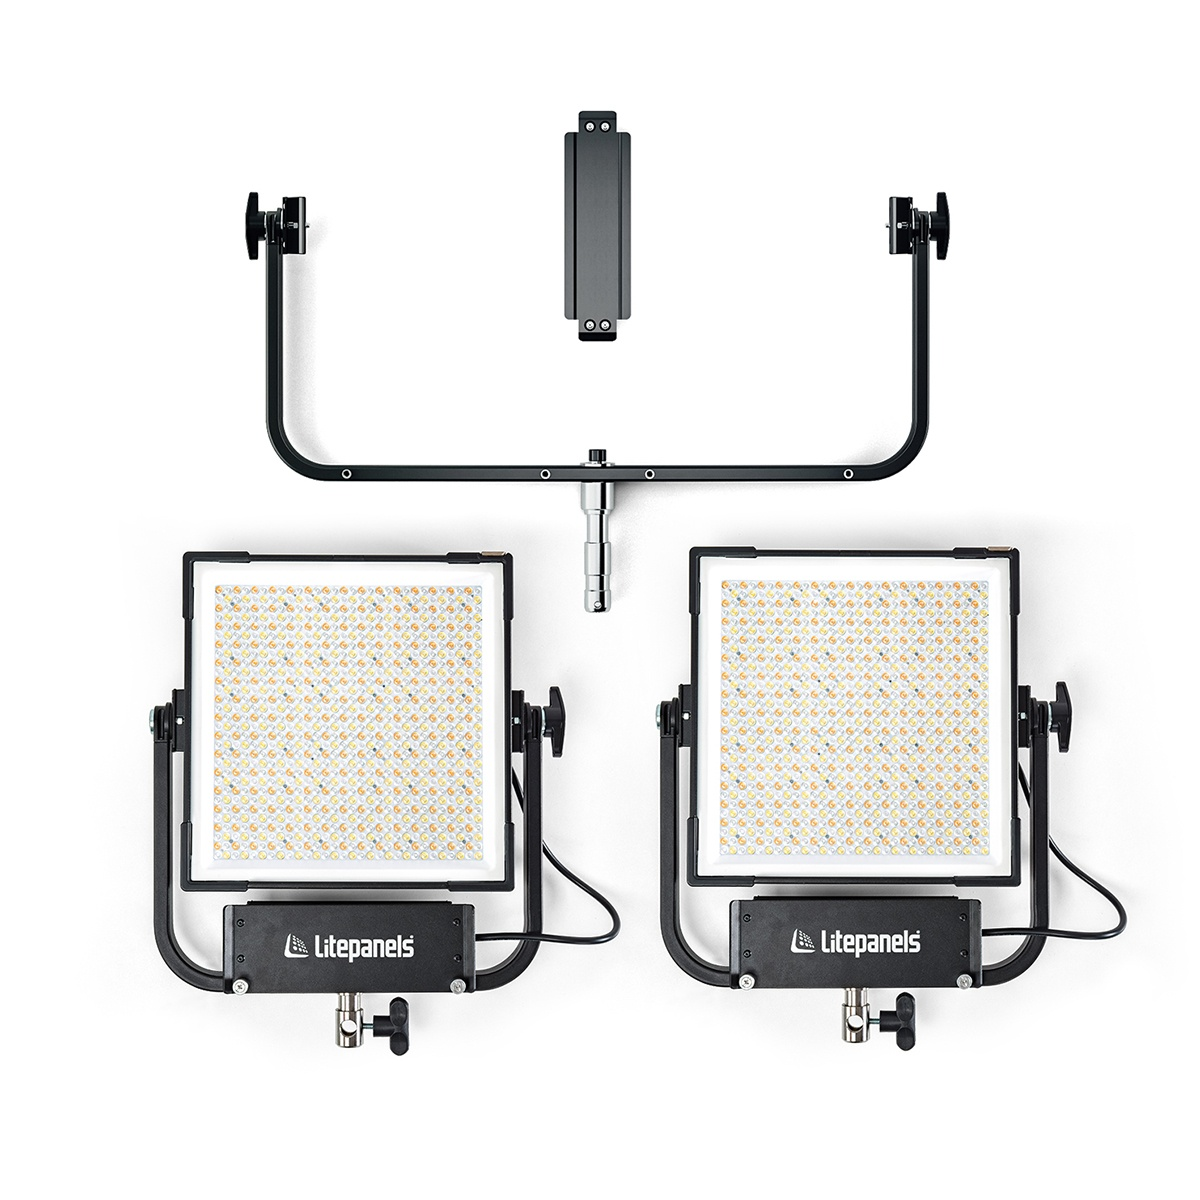 Gemini 1x1 Hard Dual Array Light Kit